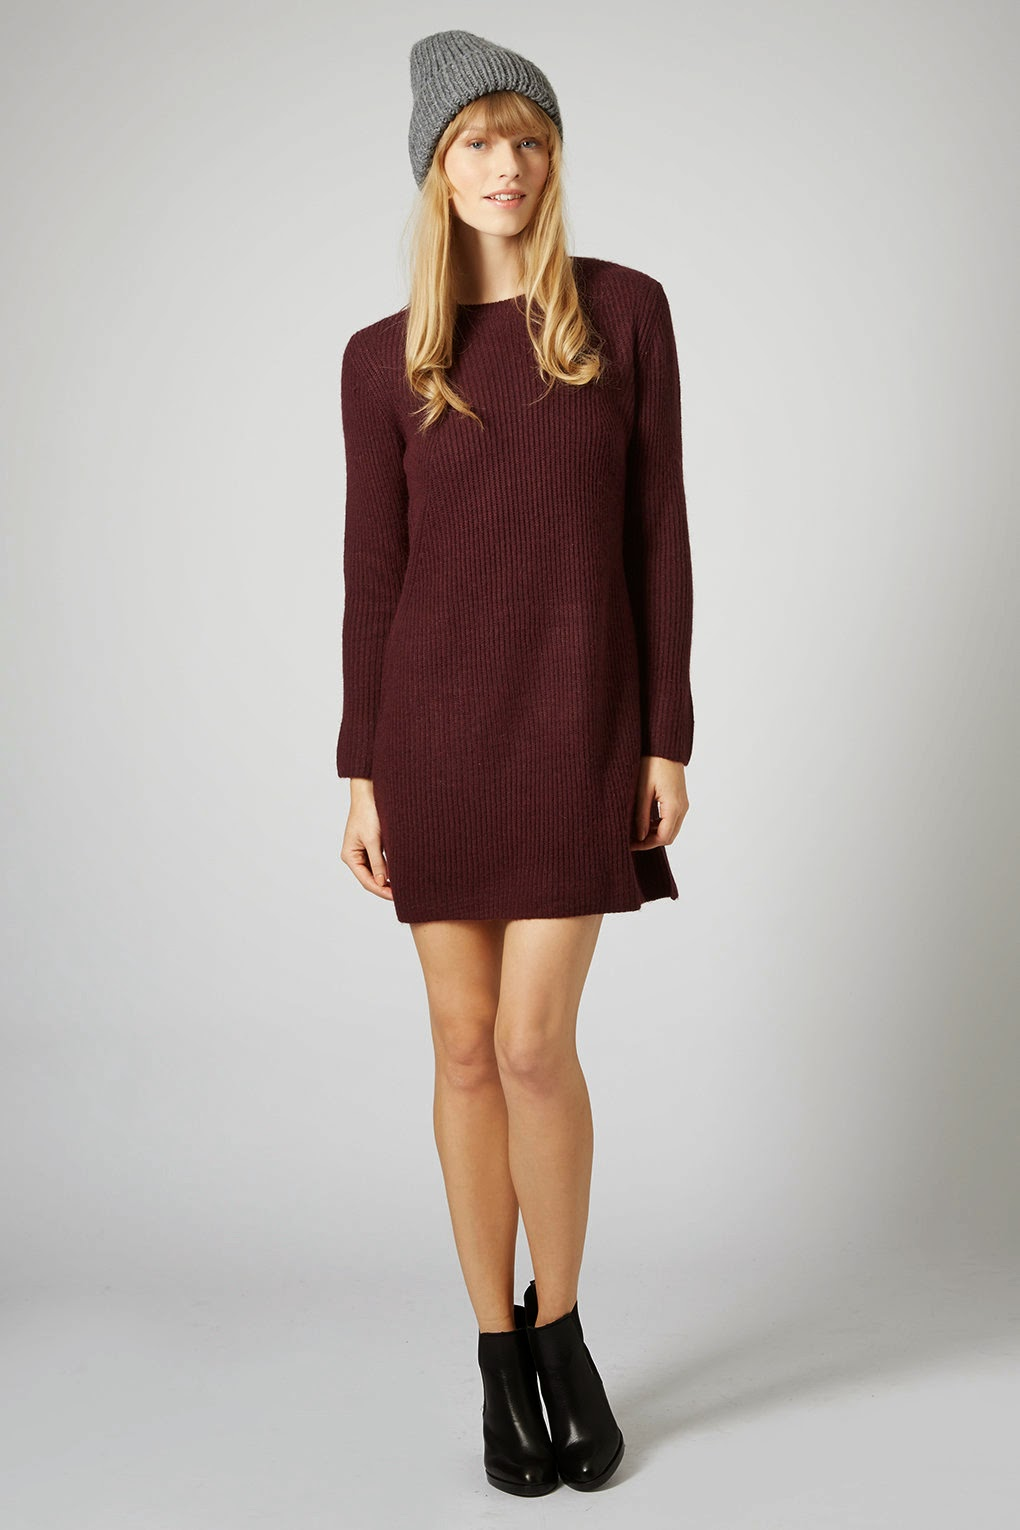 burgundy jumper dress